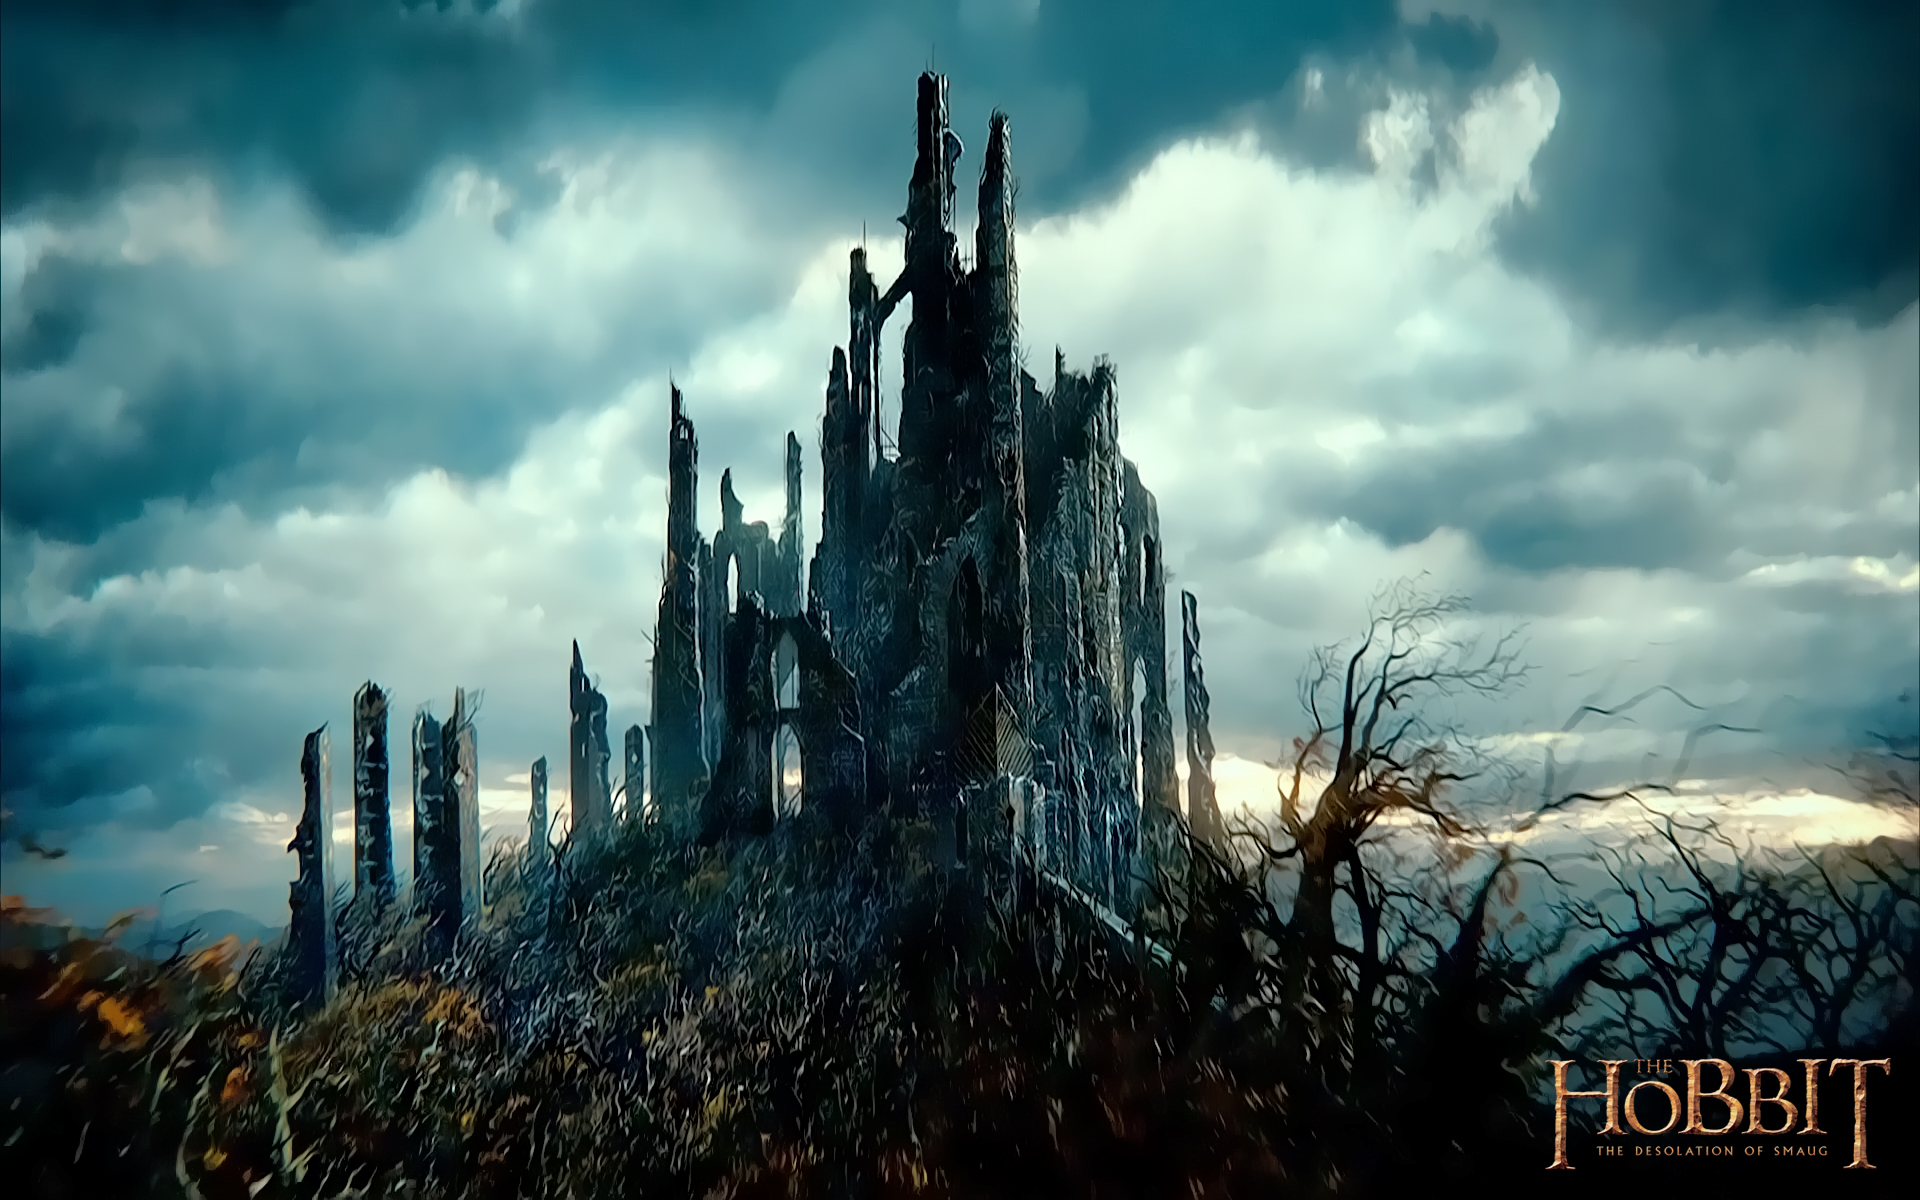 Dol Guldur The Hobbit 2012 2014